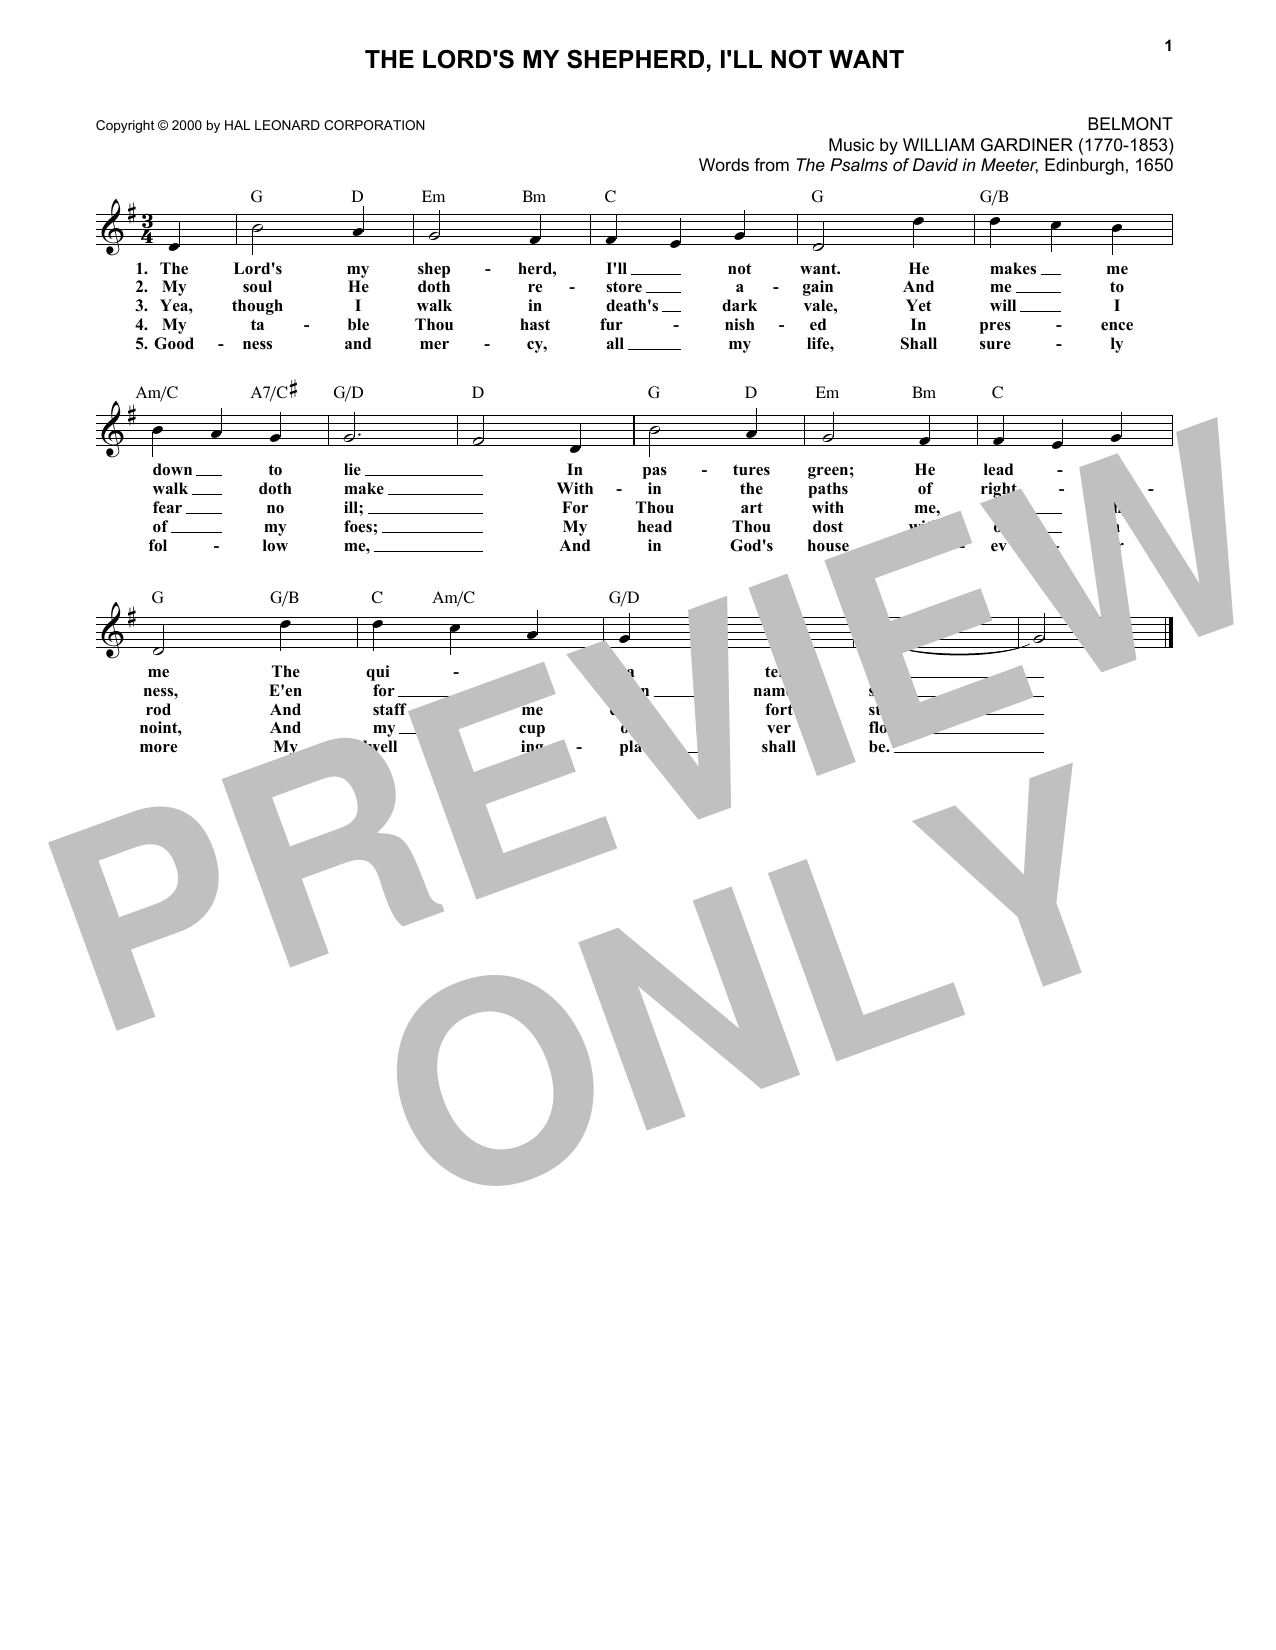 Scottish Psalter The Lord's My Shepherd, I'll Not Want sheet music notes and chords. Download Printable PDF.